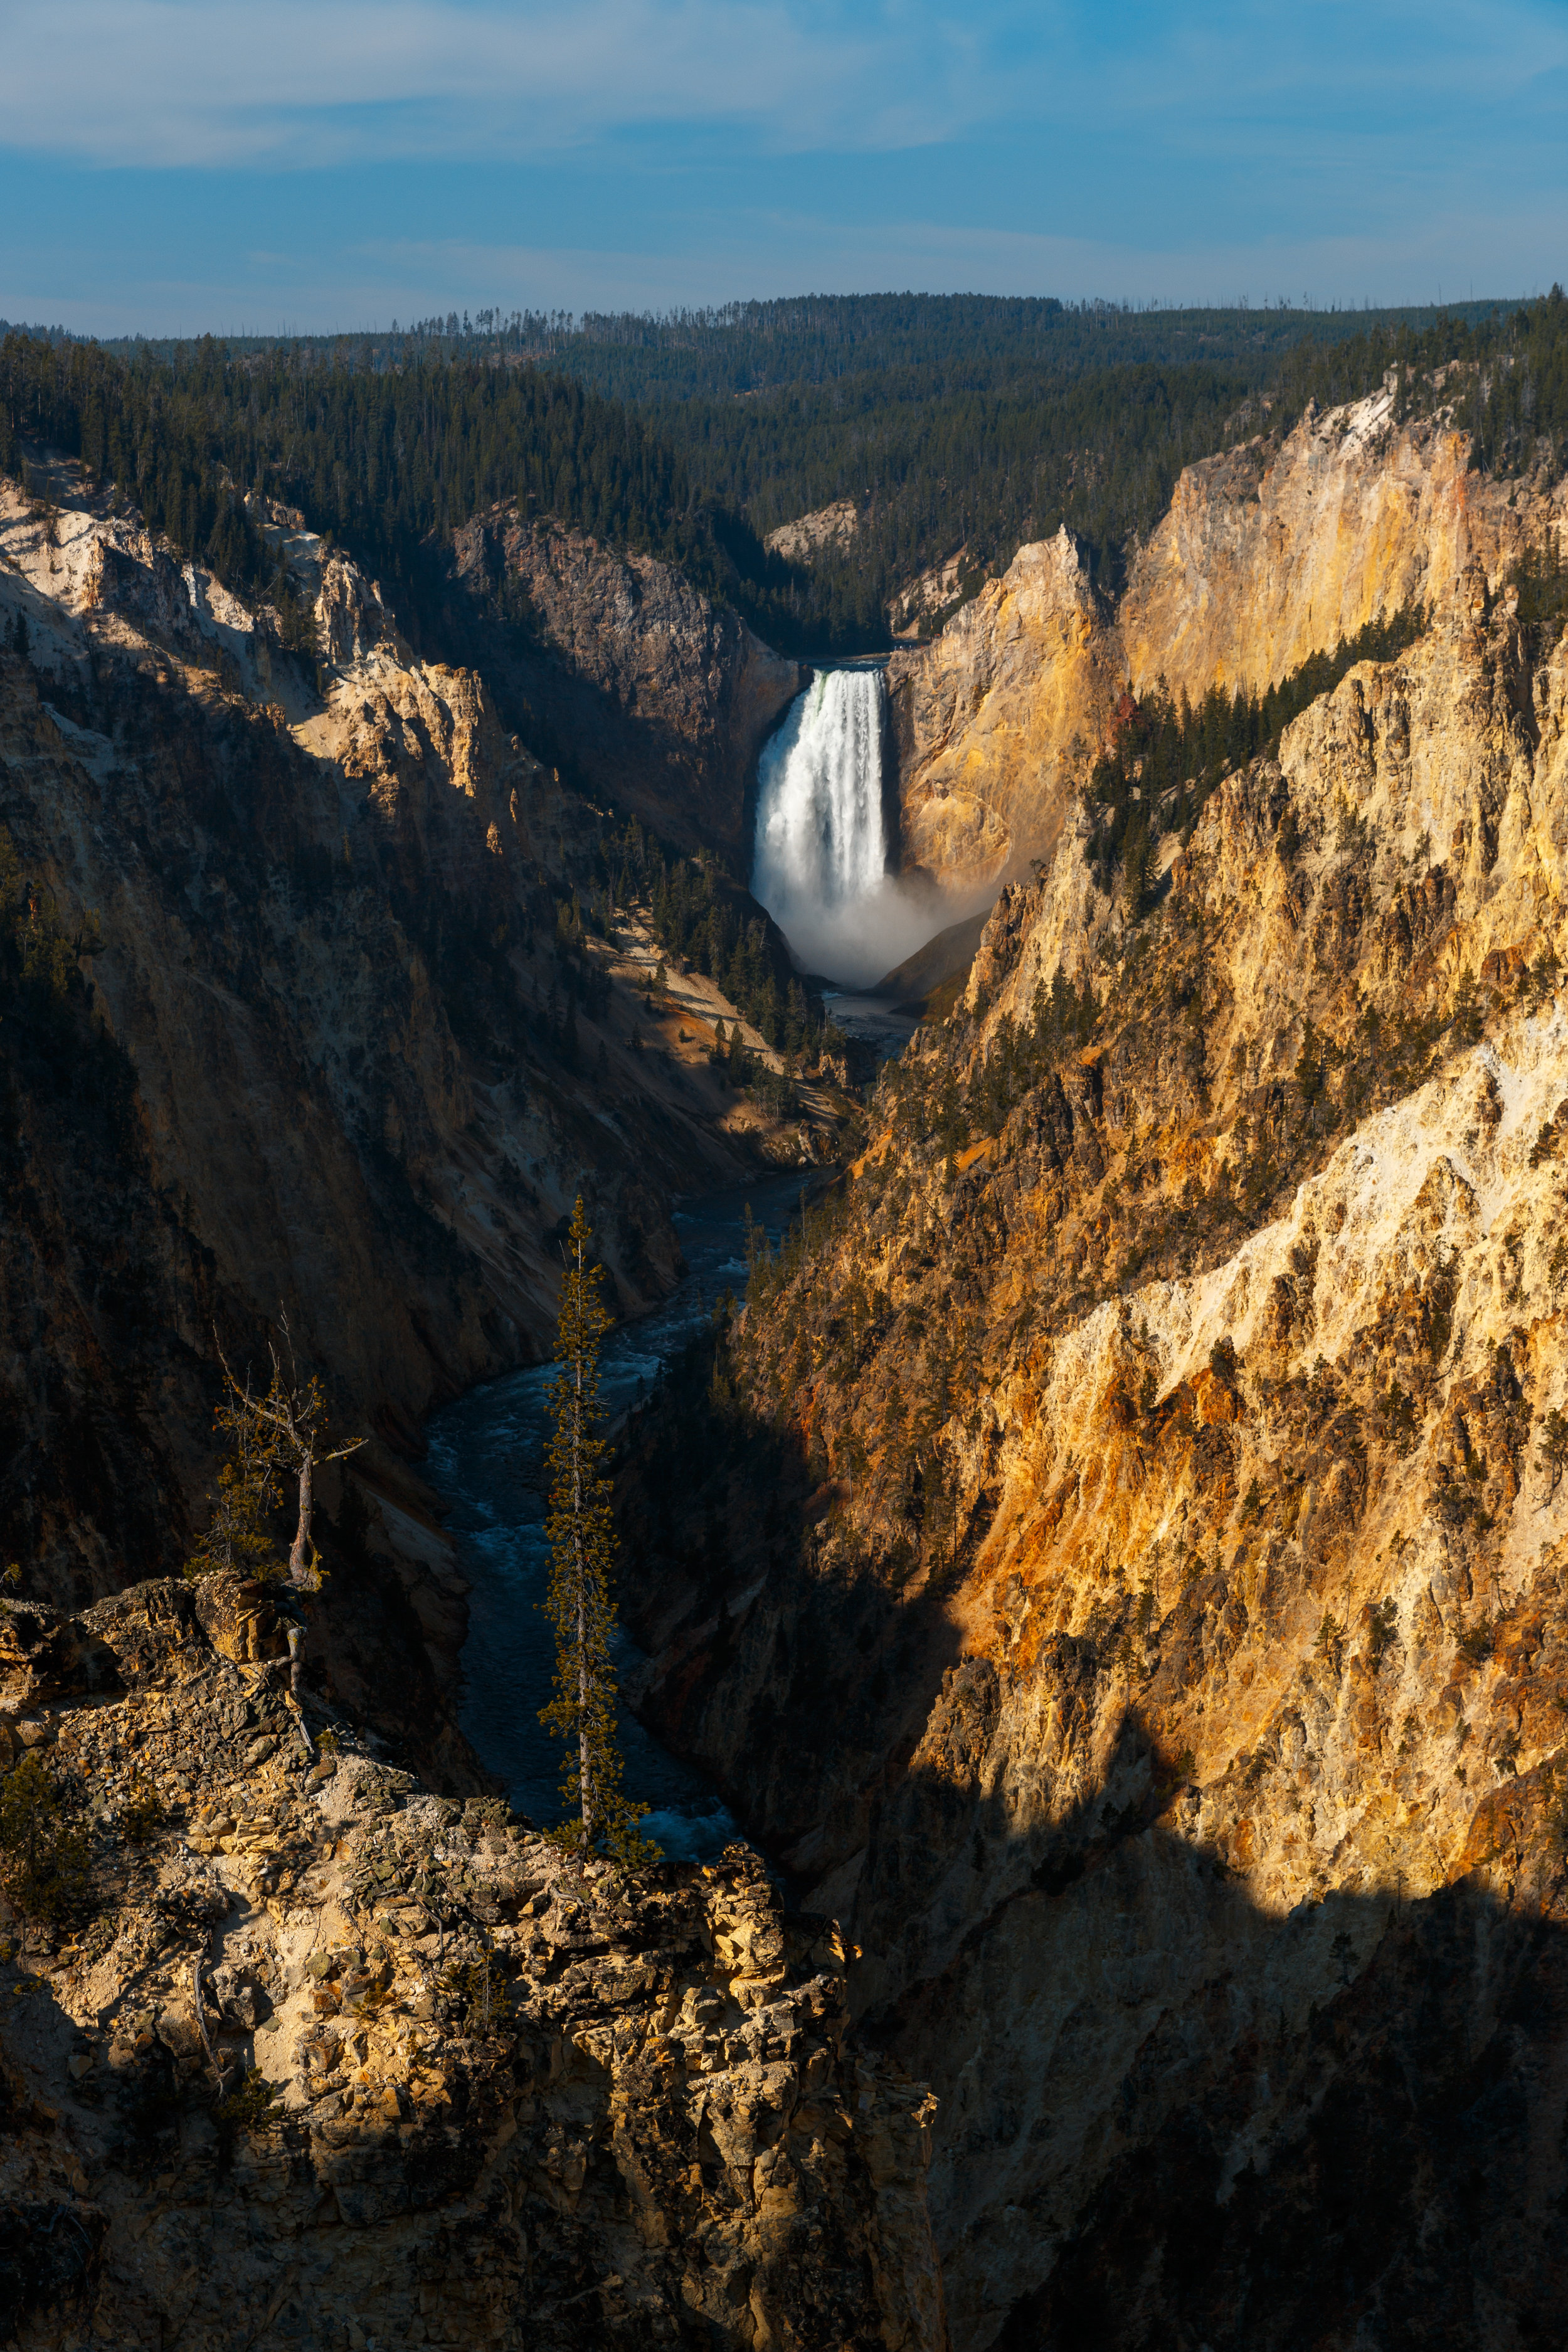 Upper Yellowstone Falls in the Grand Canyon of Yellowstone